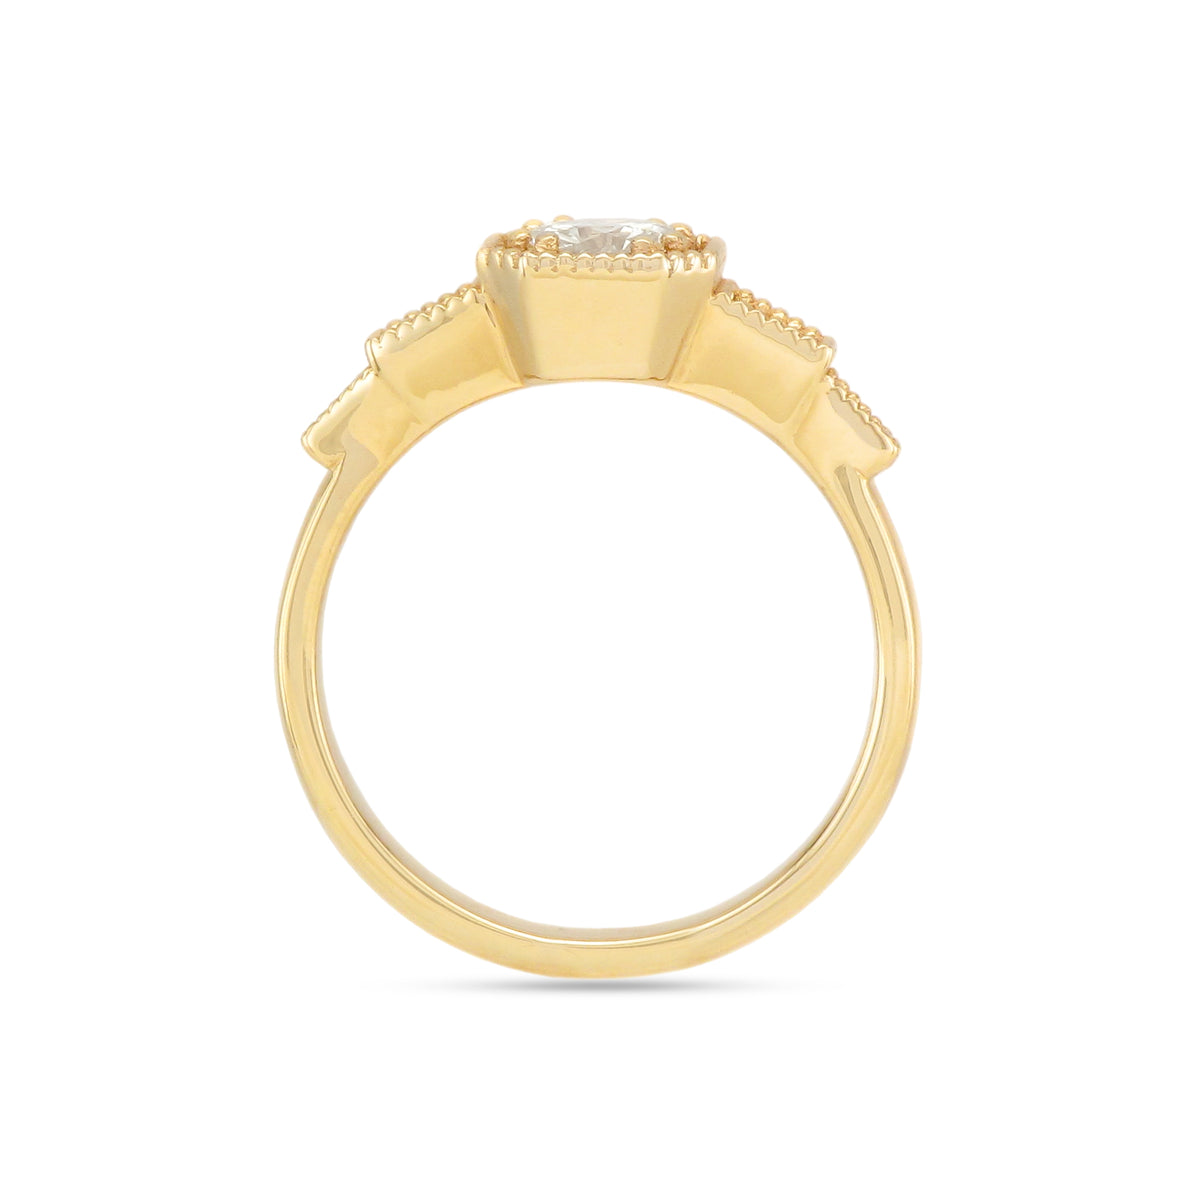 9ct Yellow Gold Three Stone Diamond Ring